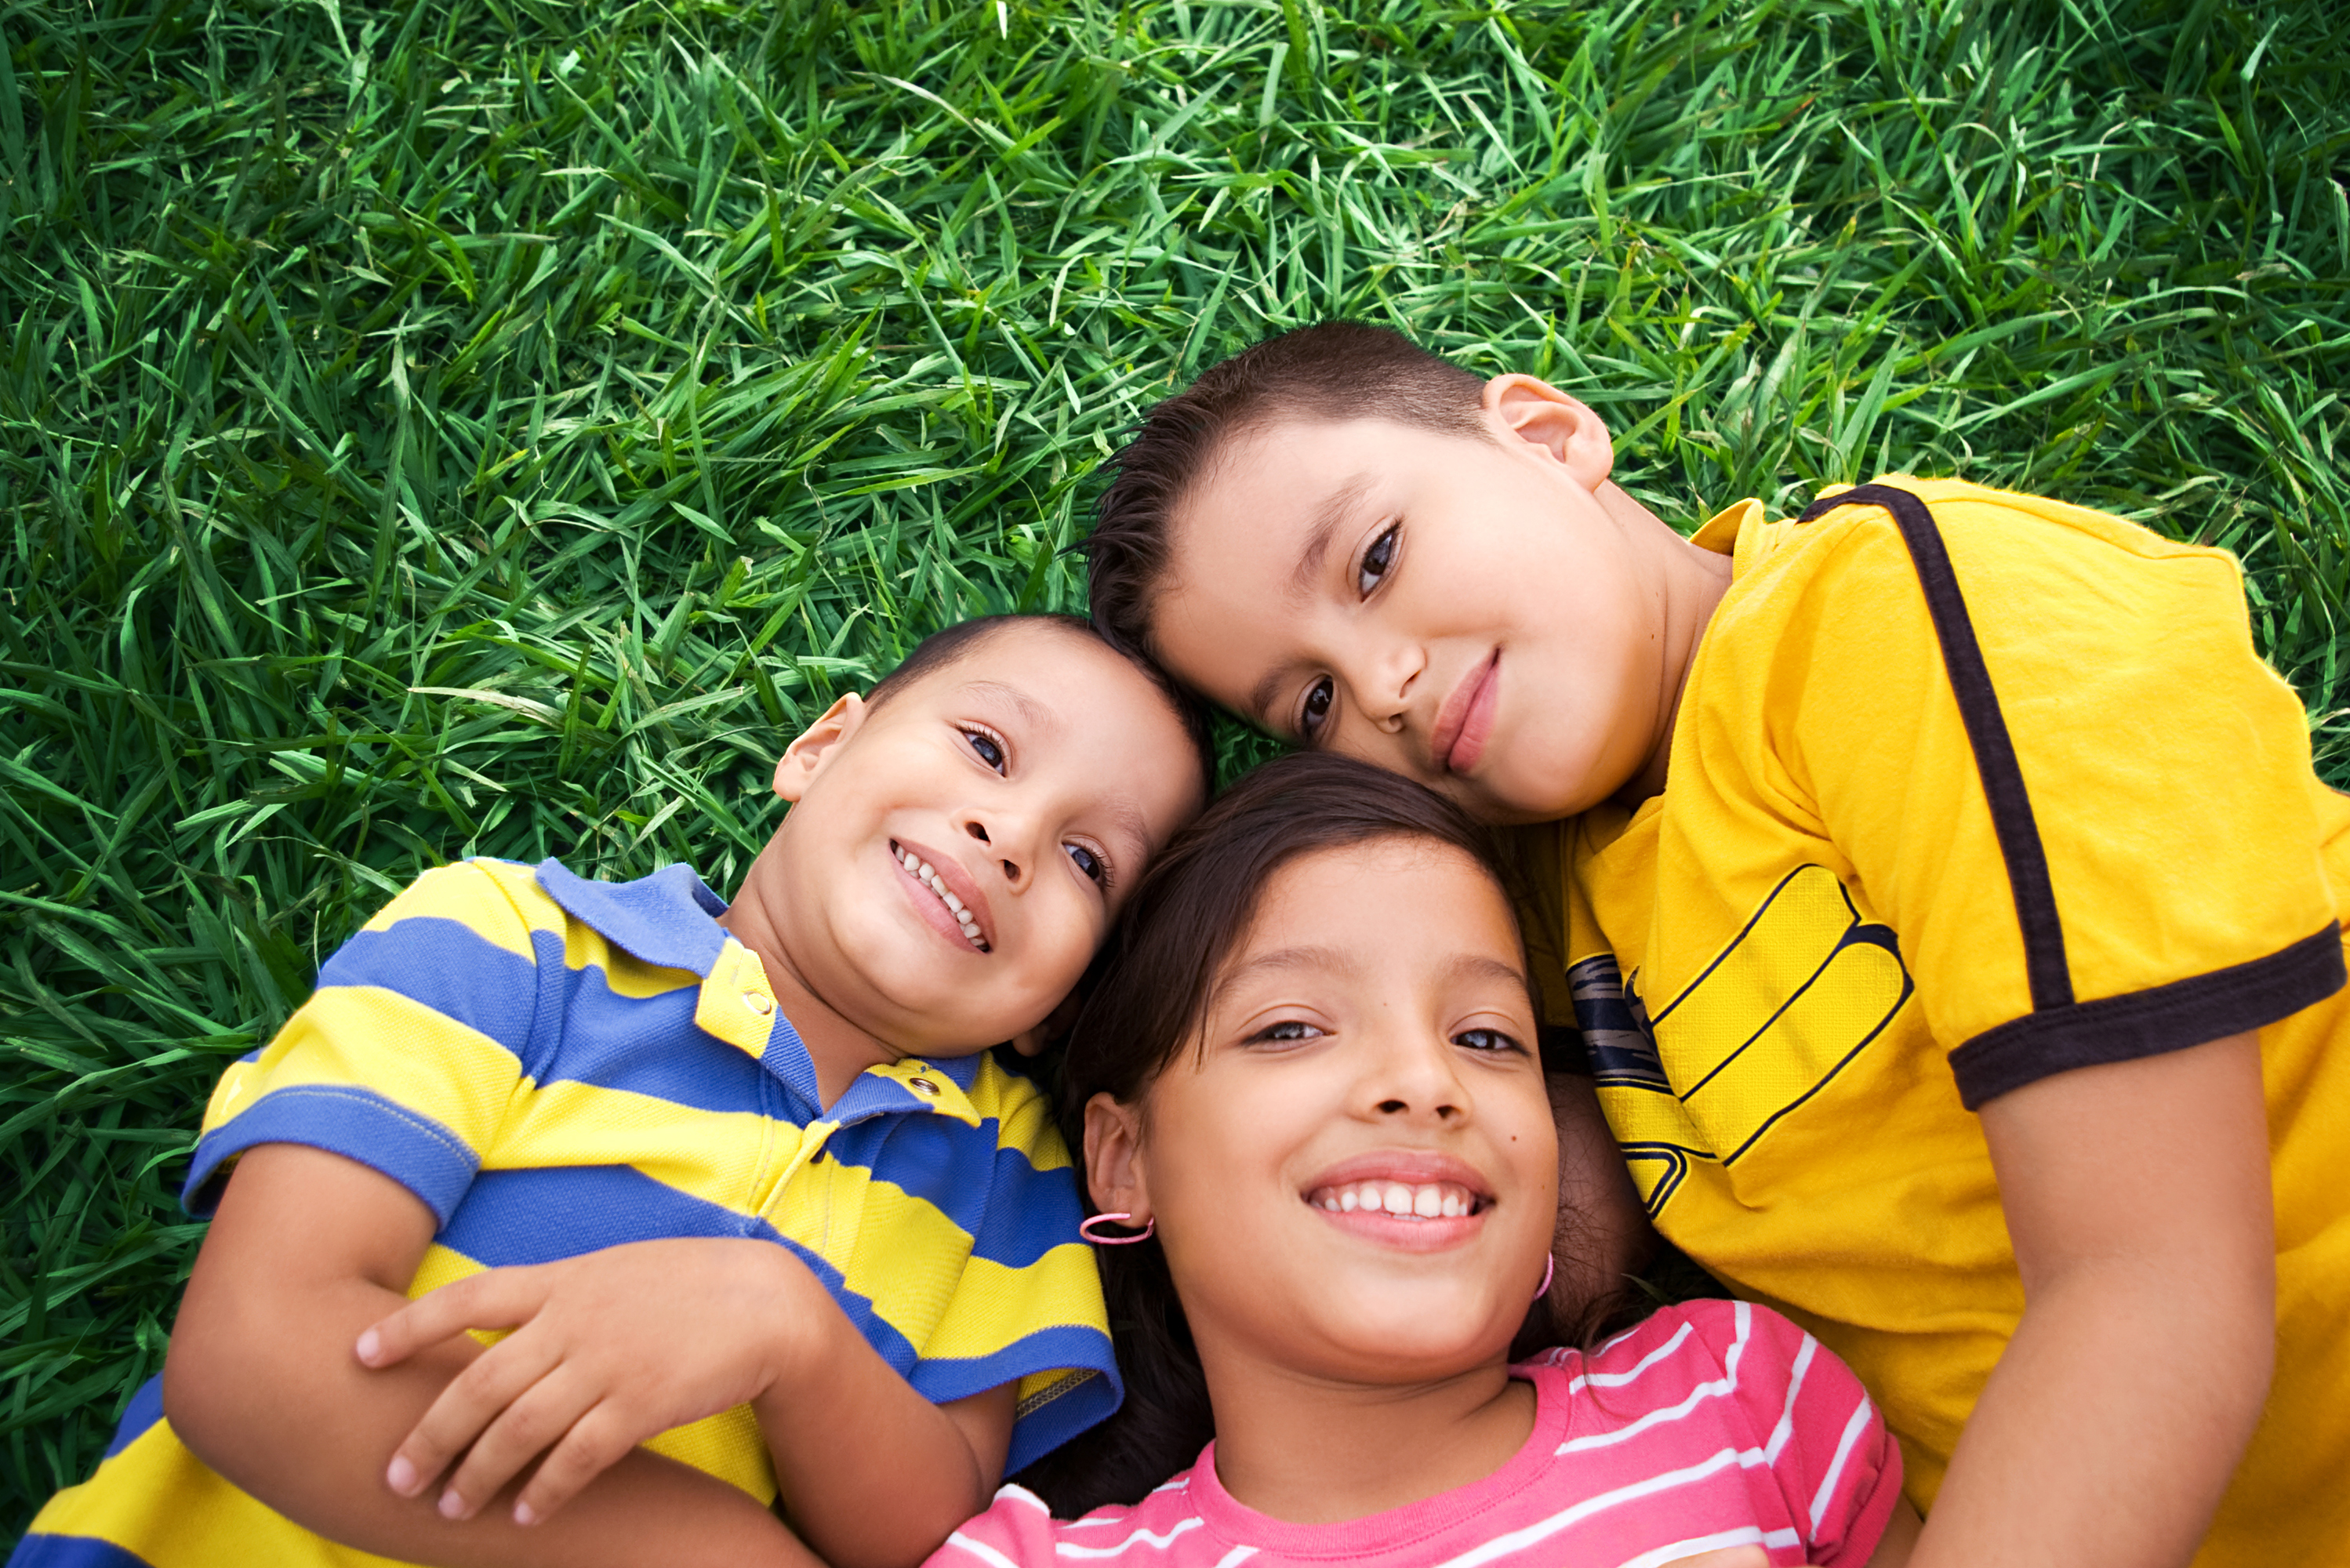 Children together in the grass